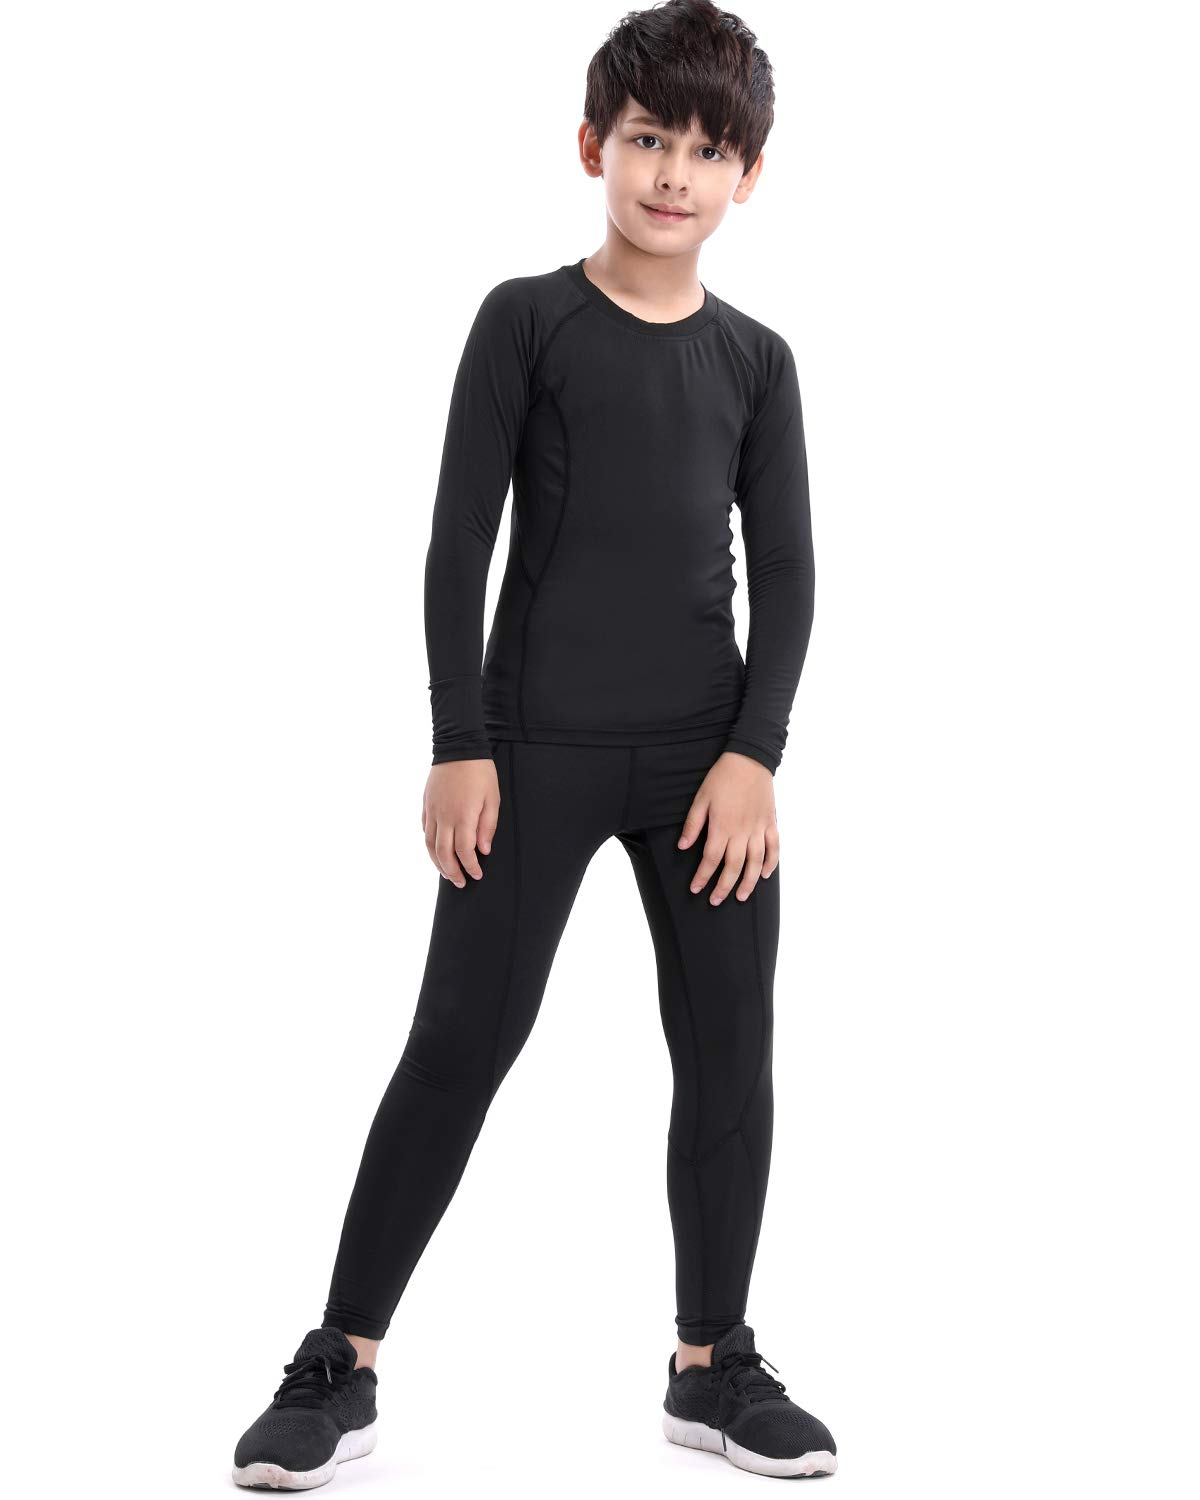 LNJLVI Boys & Girls Sports Compression Shirts Long Sleeve and Pant 2 PCS Set Ltd.